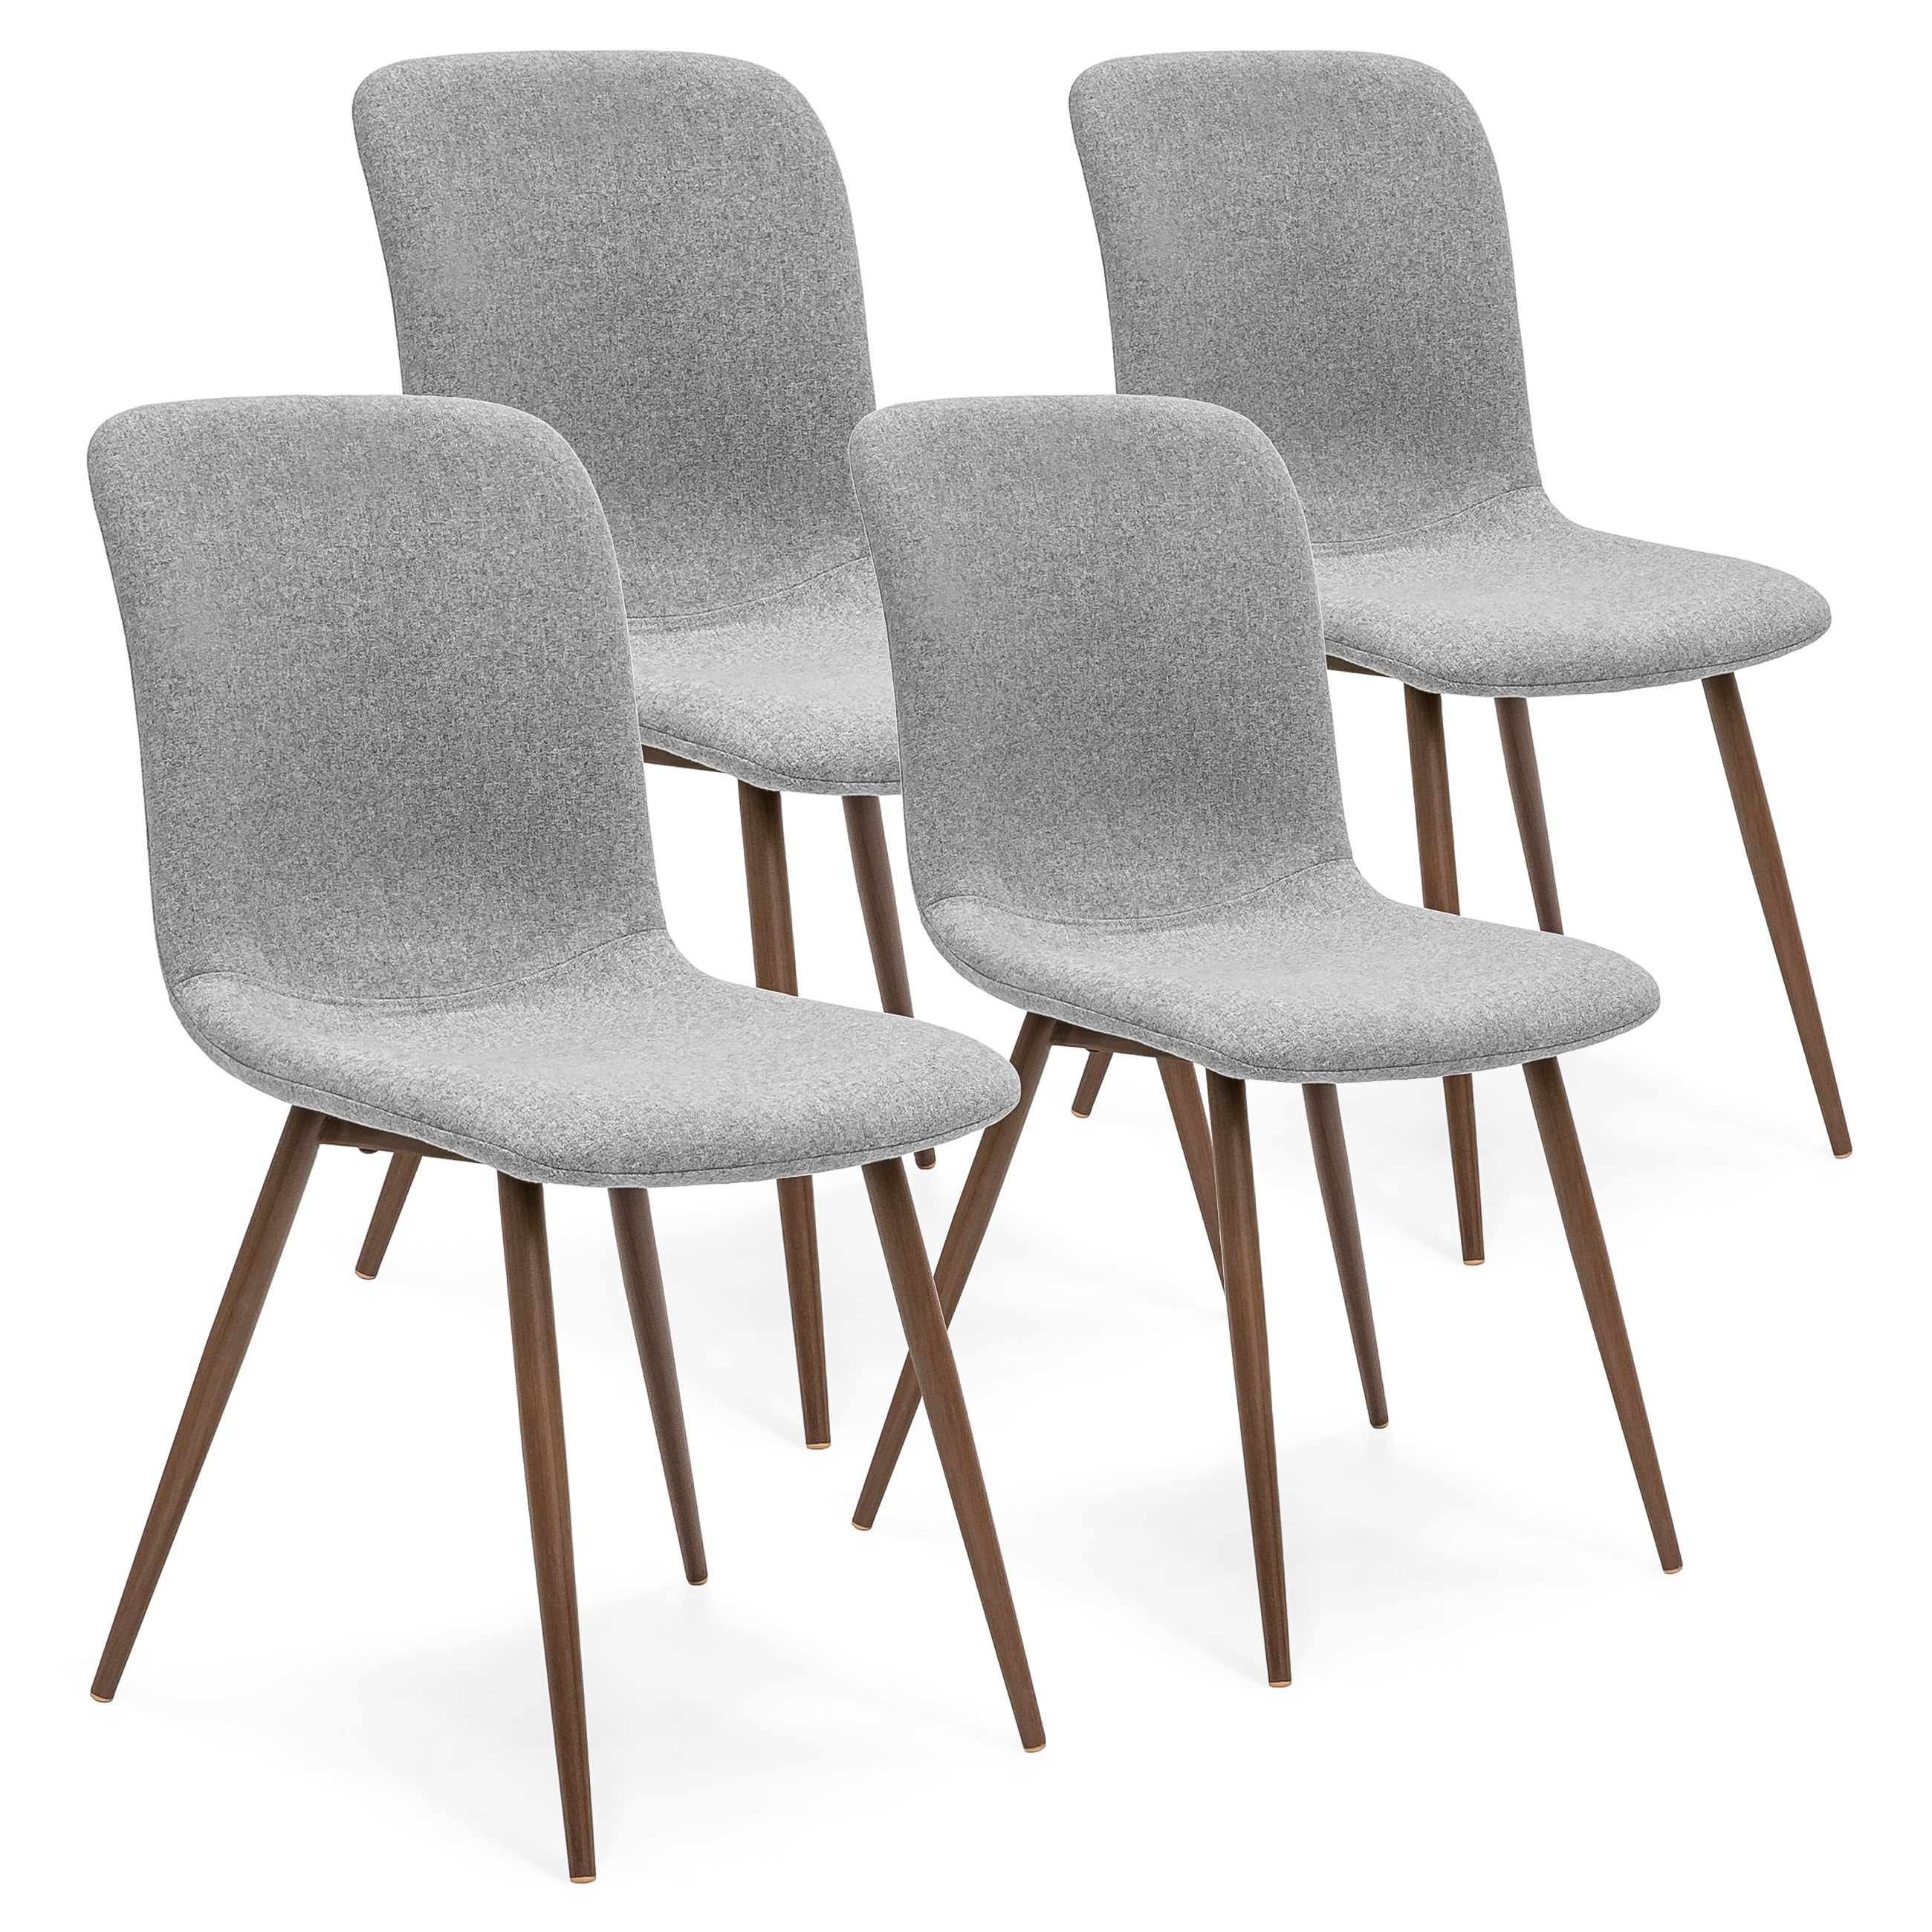 Home Mid Century Modern Dining Room Modern Dining Chairs Gray